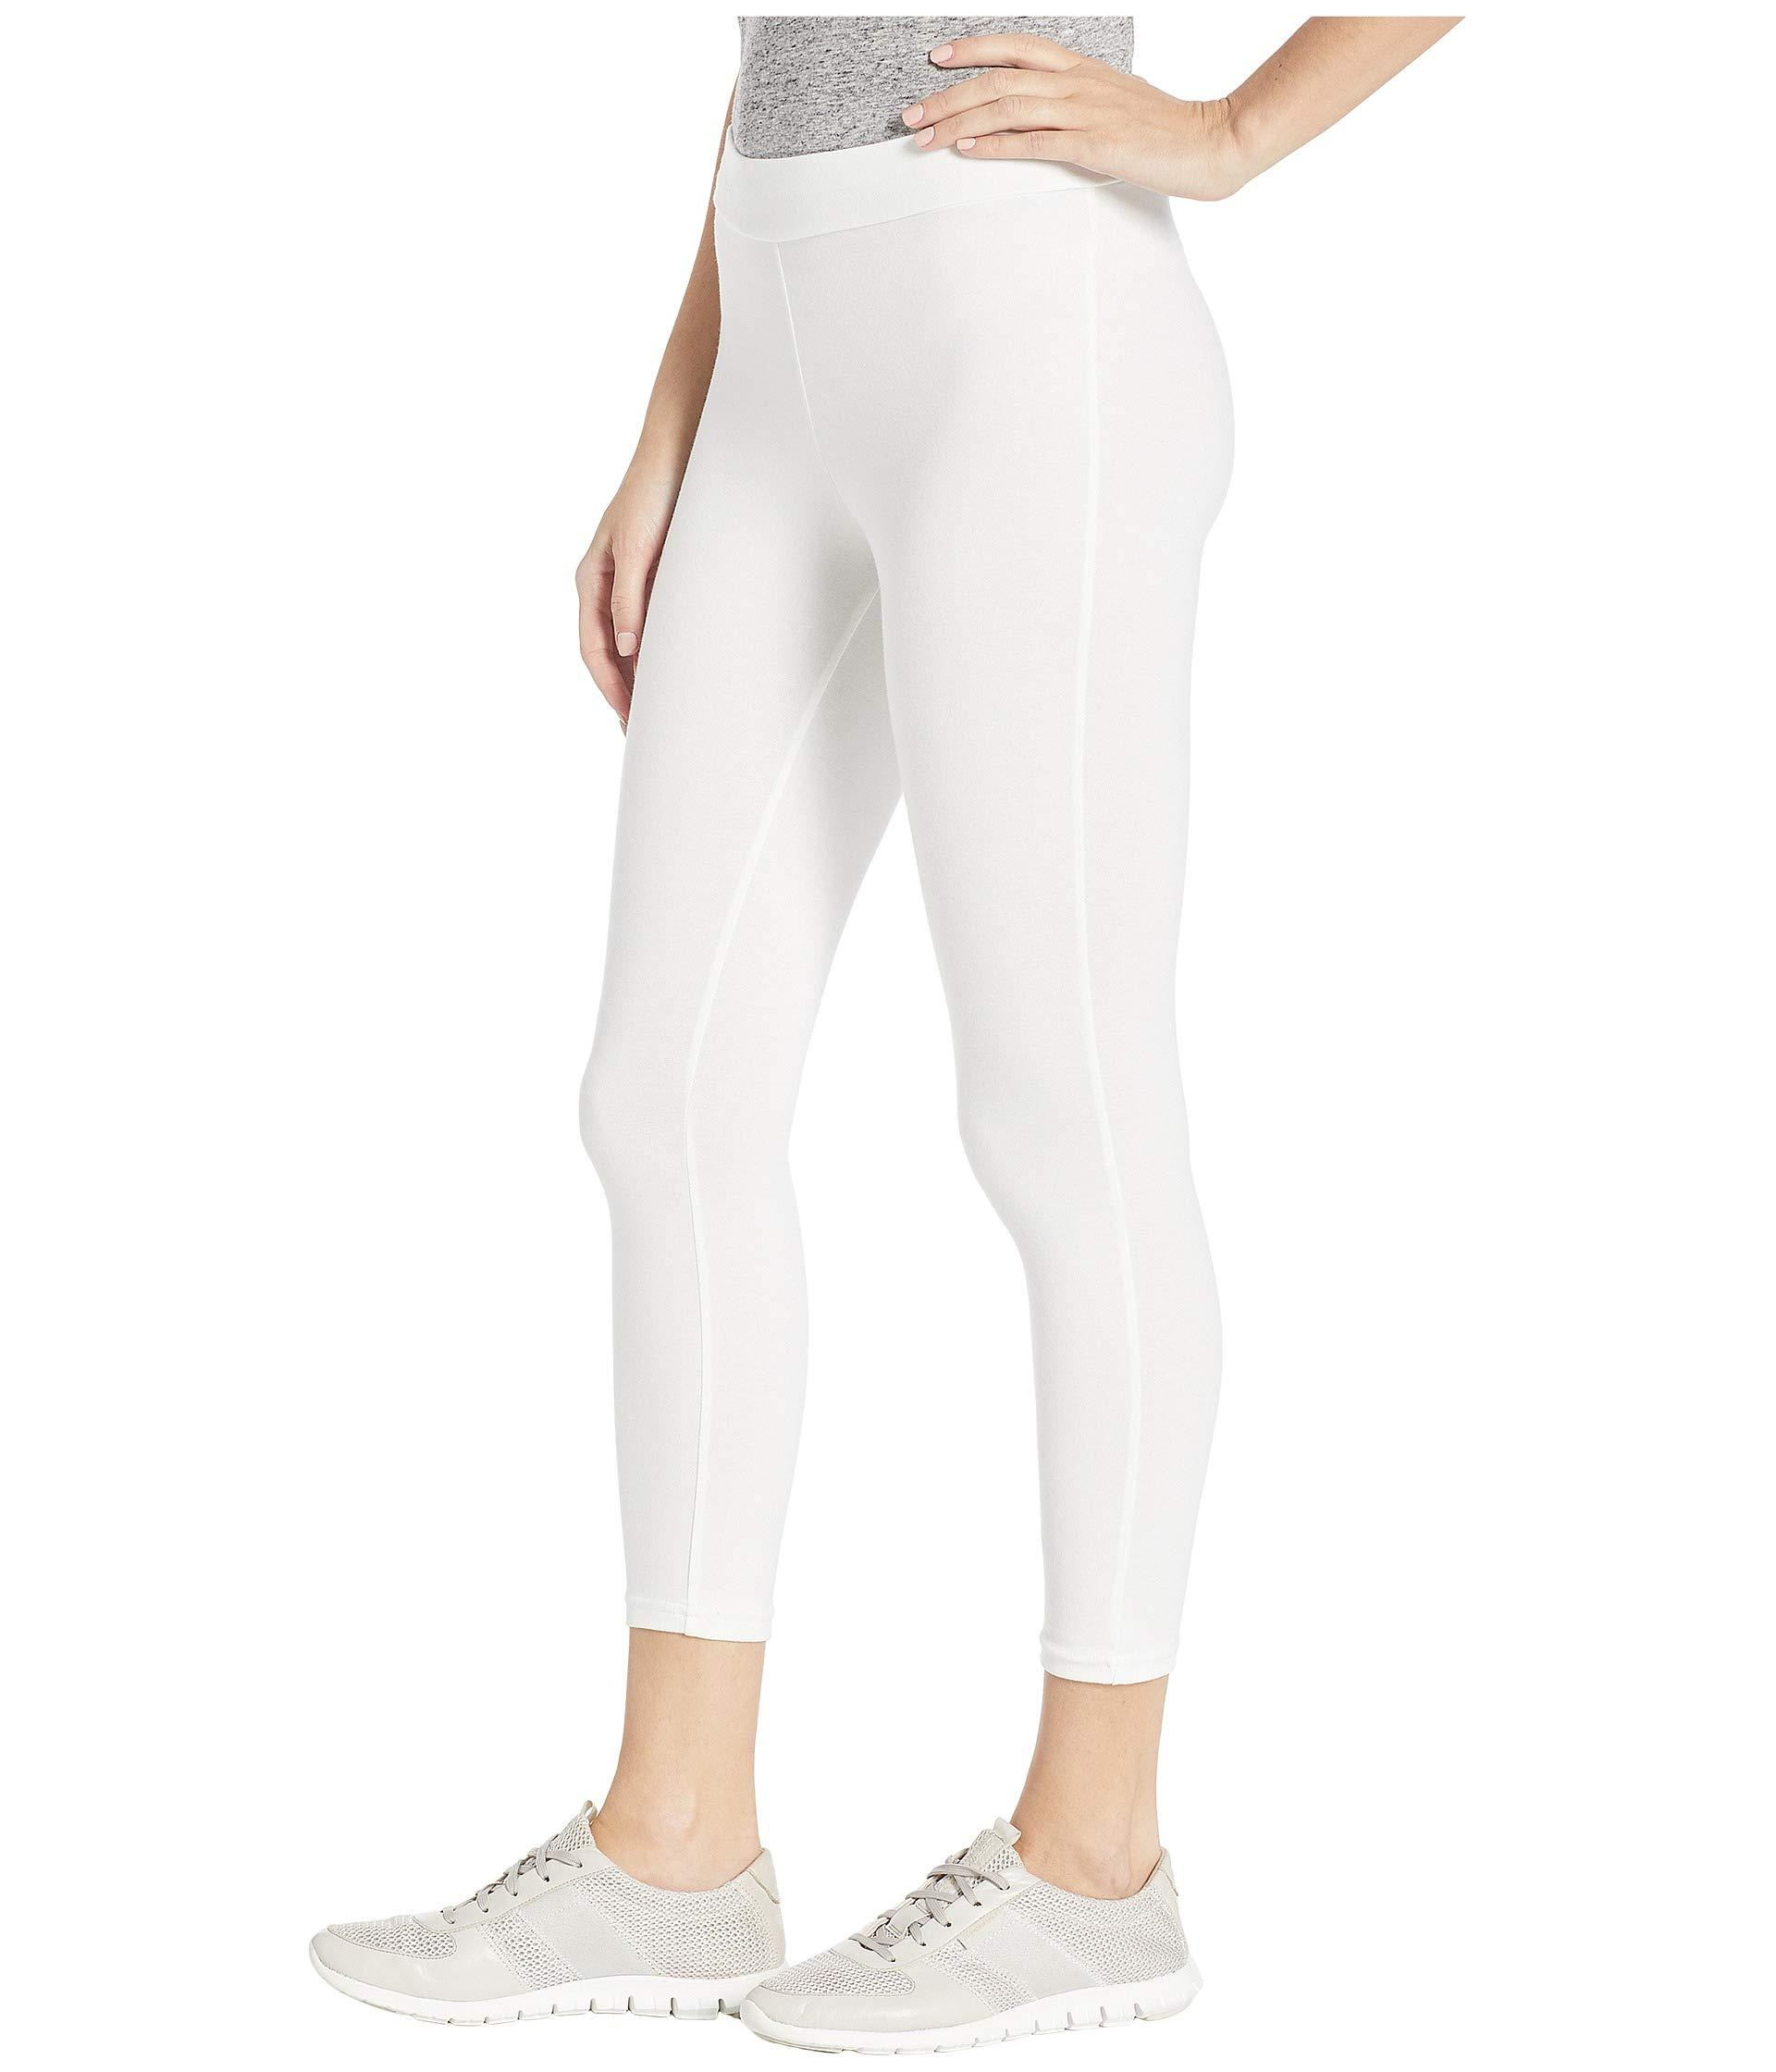 427e8349411 Lyst - Hue Wide Waistband Blackout Cotton Capri Leggings (black) Women s  Casual Pants in White